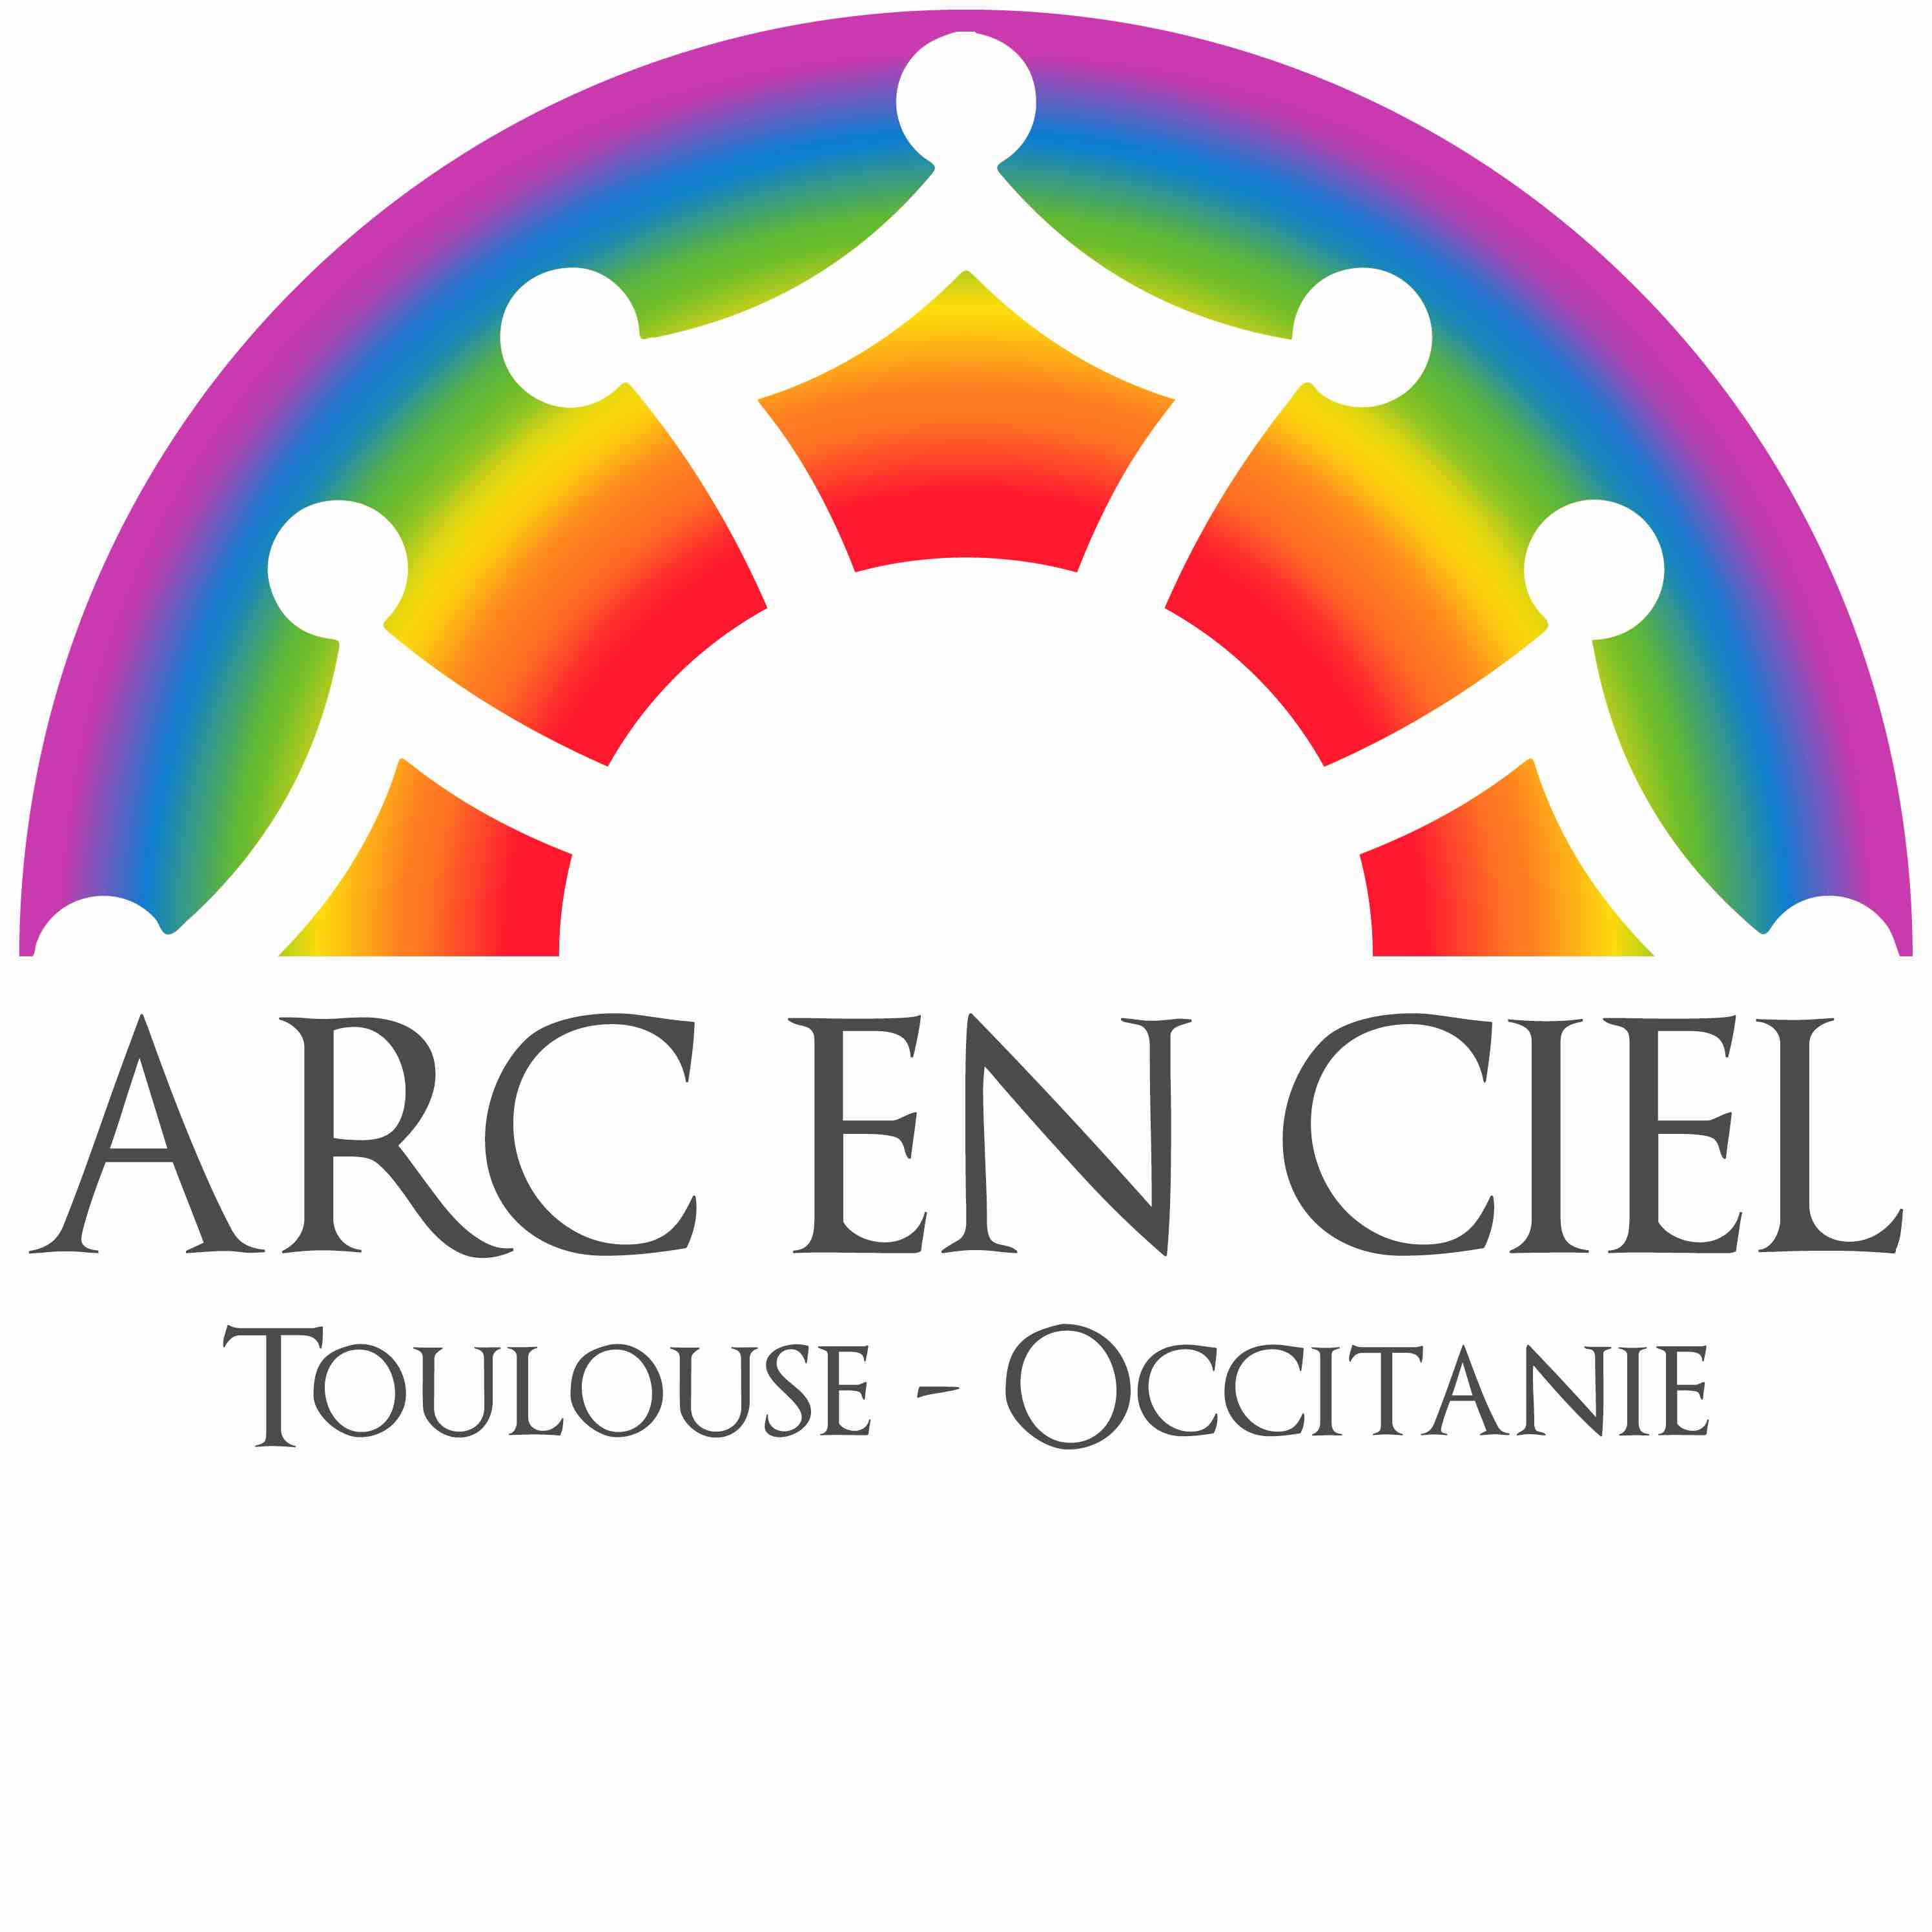 Association - ARC EN CIEL Toulouse-Occitanie